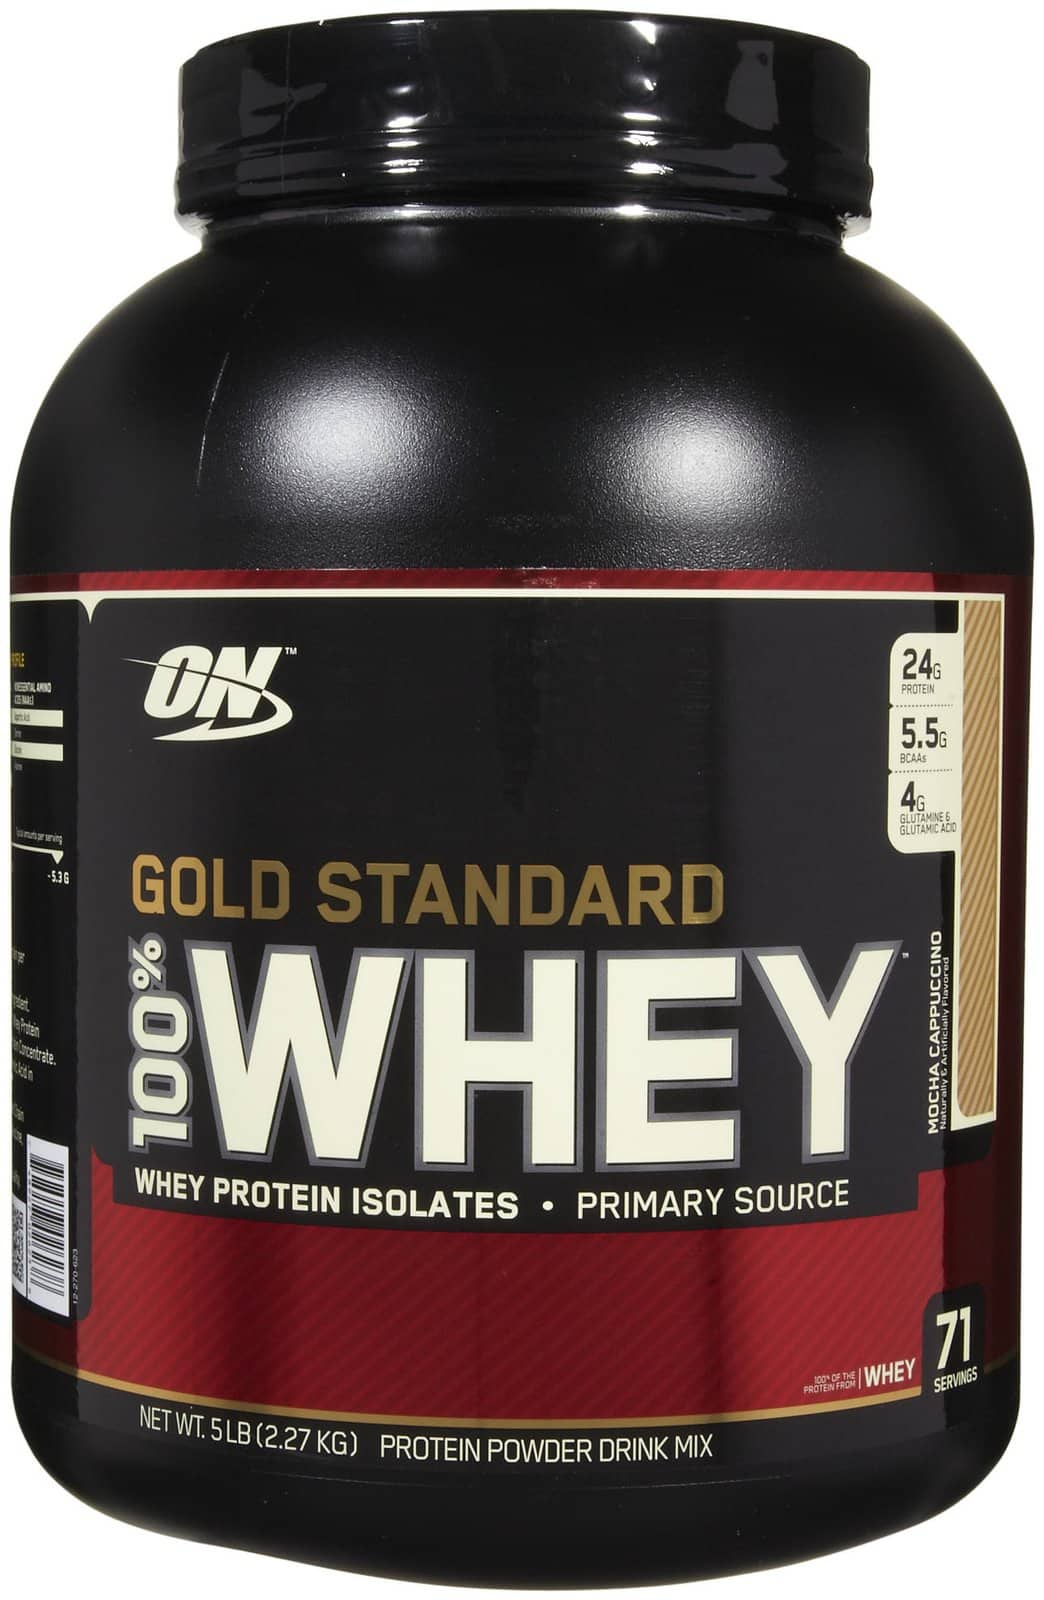 5lb Optimum Nutrition 100% Whey Protein Gold Standard (Mocha Cappuccino) $42.39 FREE SHIP (New Customers)